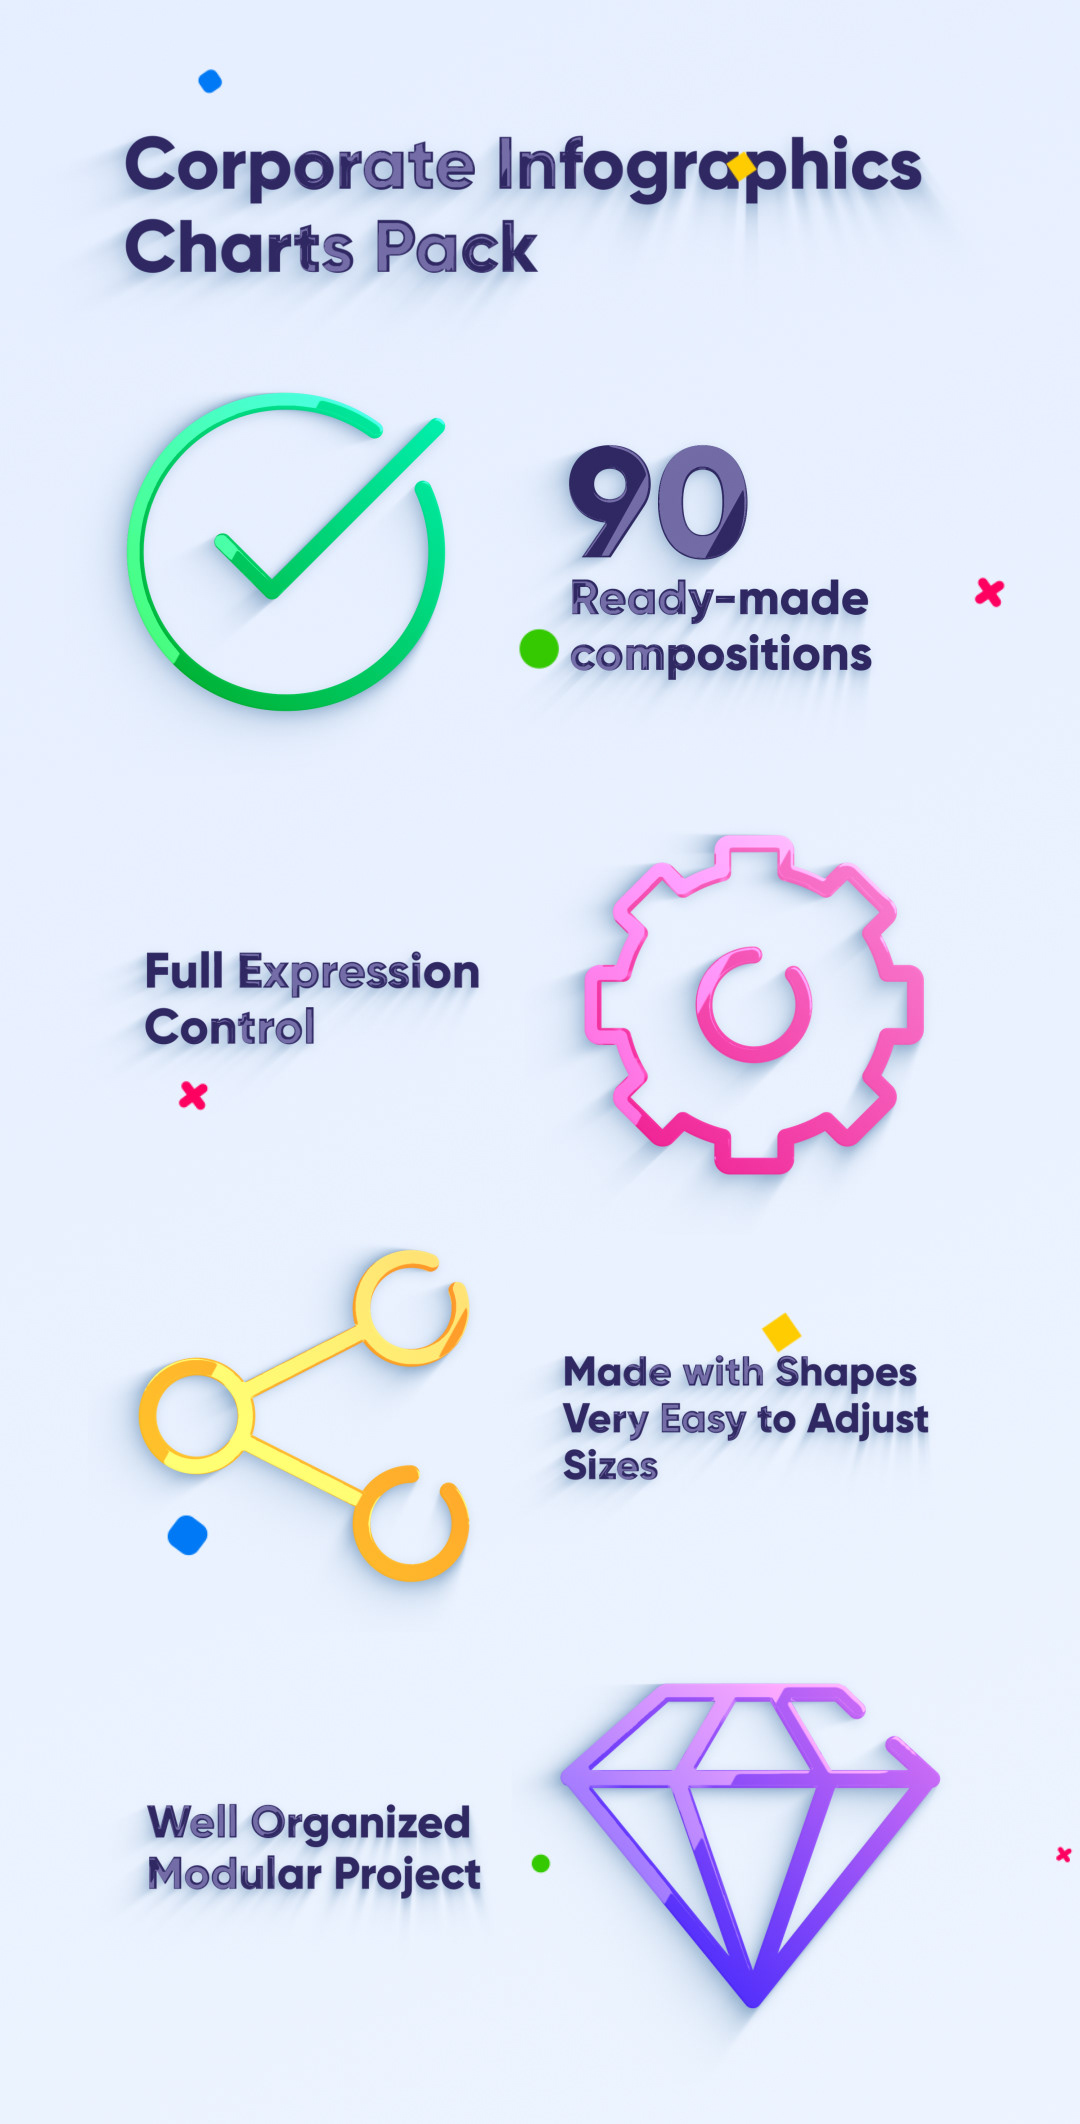 Corporate Infographics Charts Pack - 1